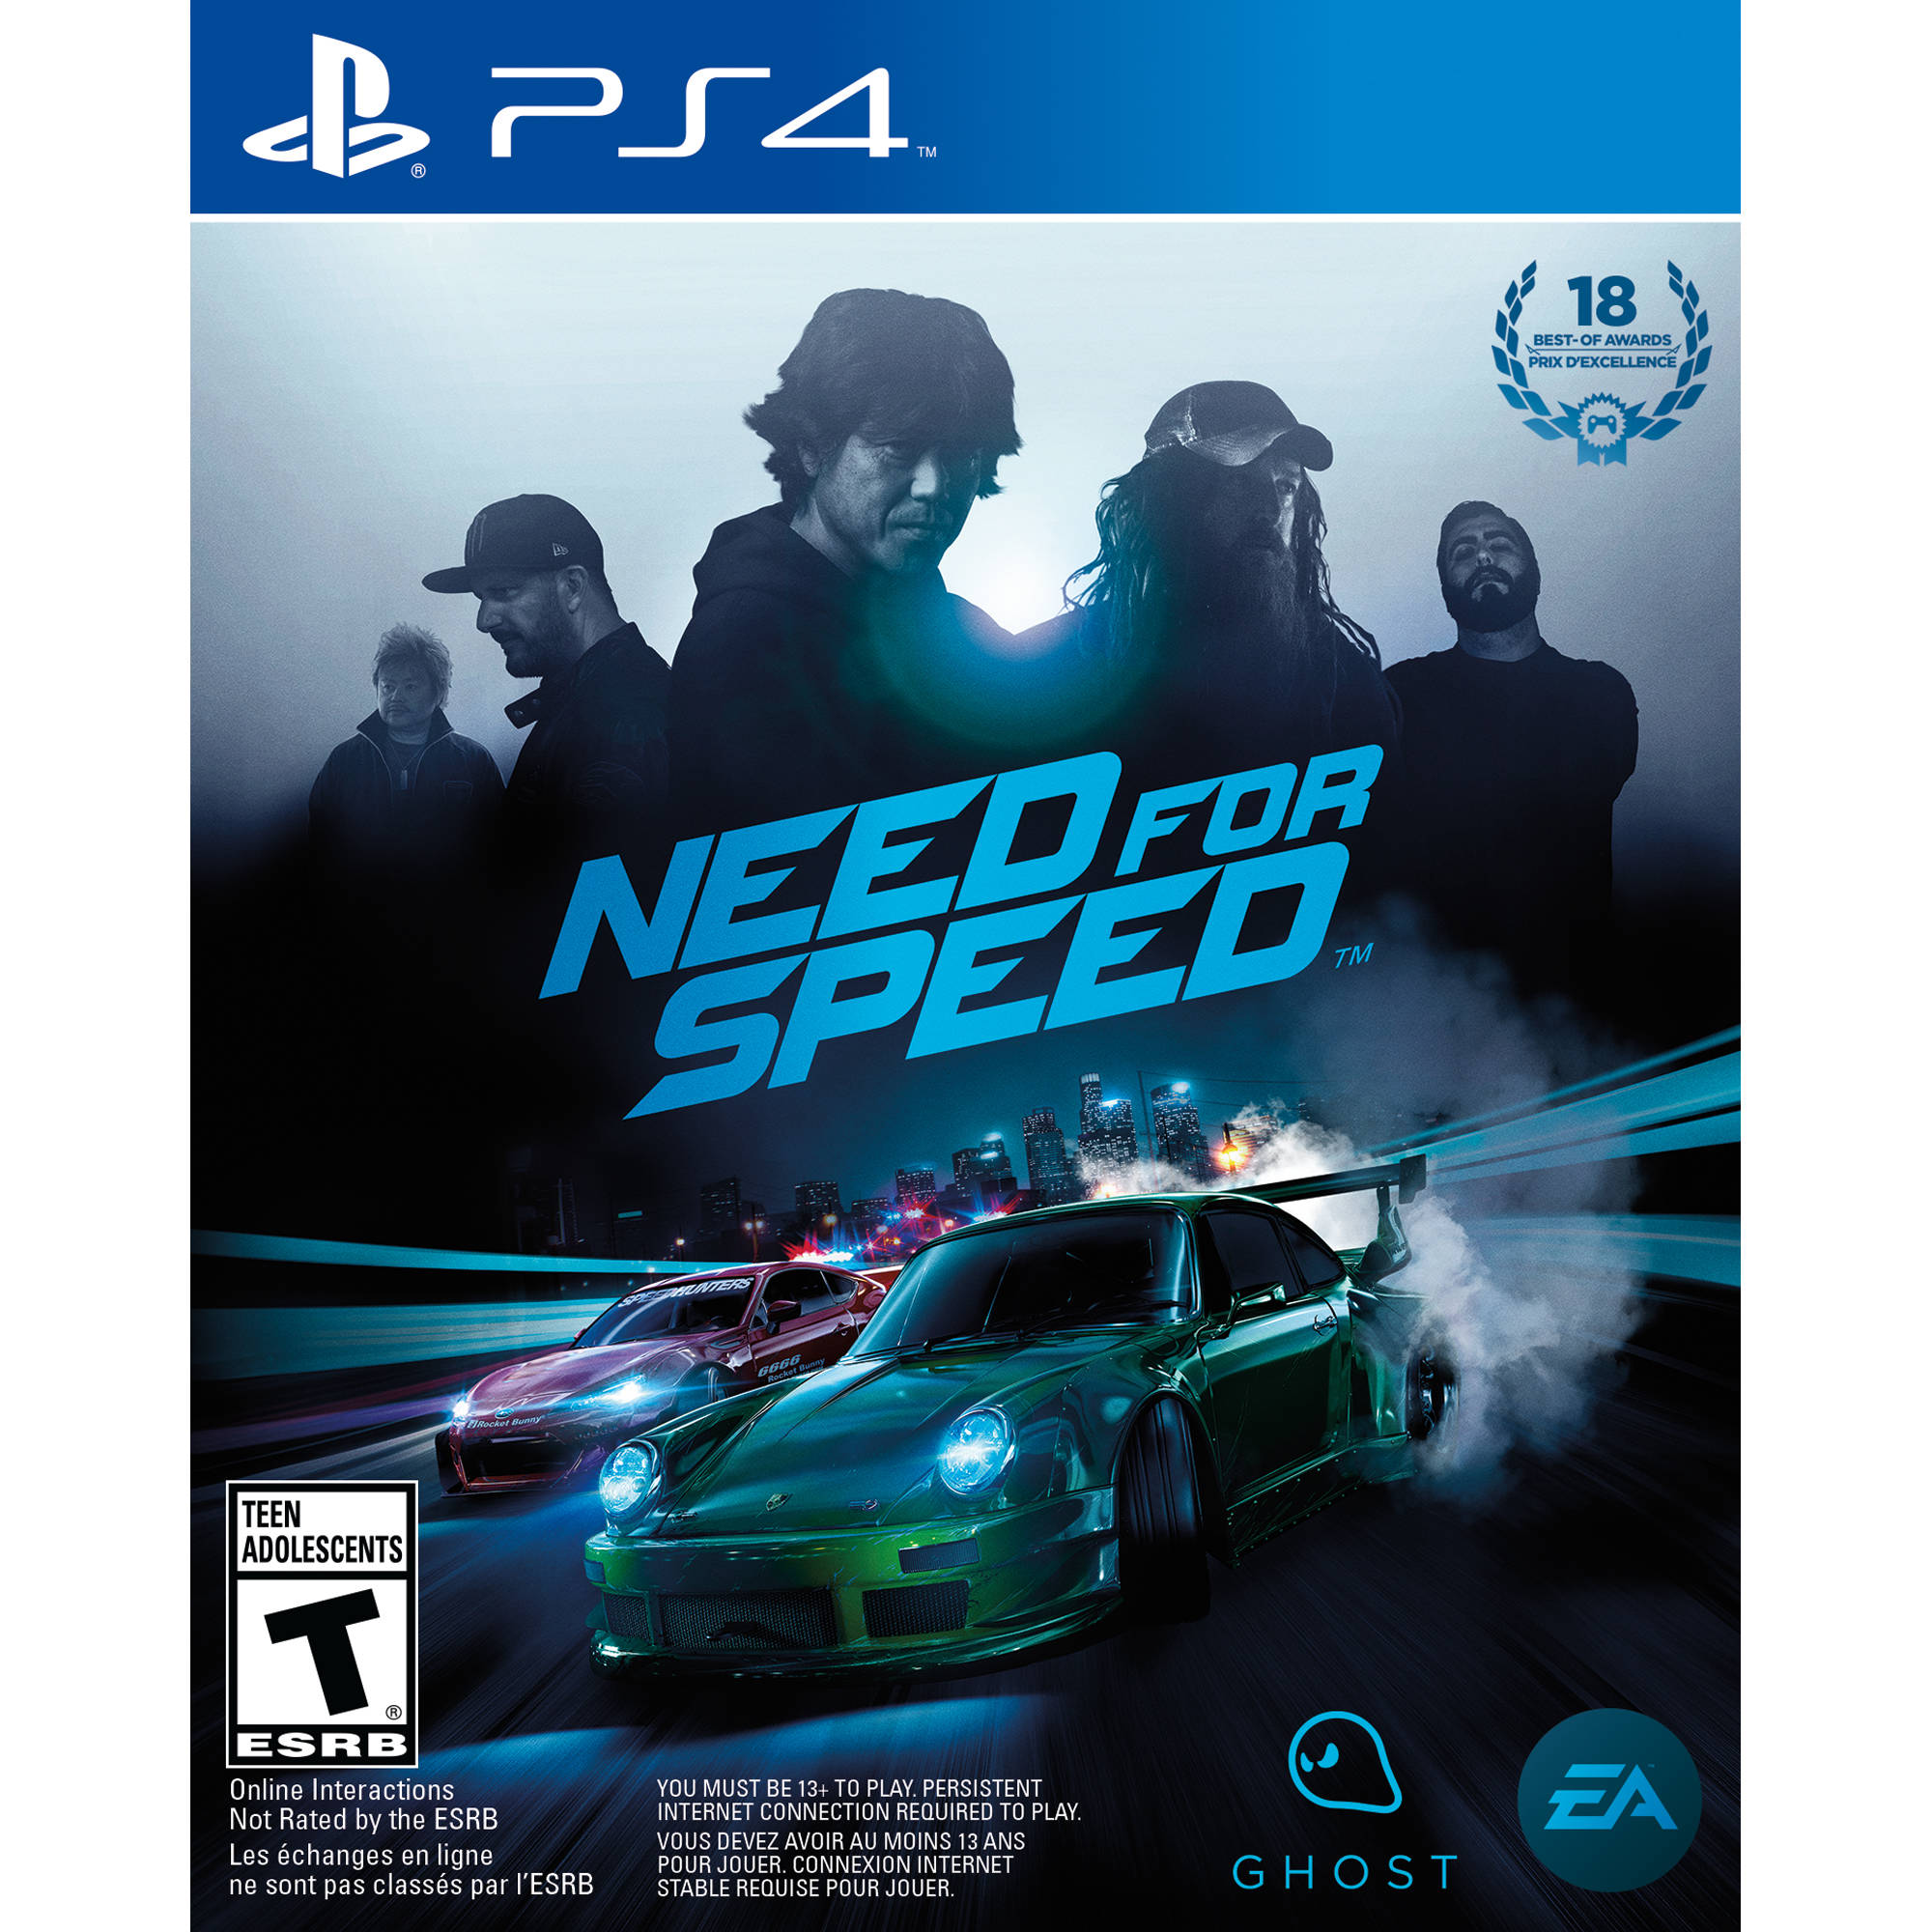 Electronic Arts Need for Speed (PS4) 36861 B&H Photo Video